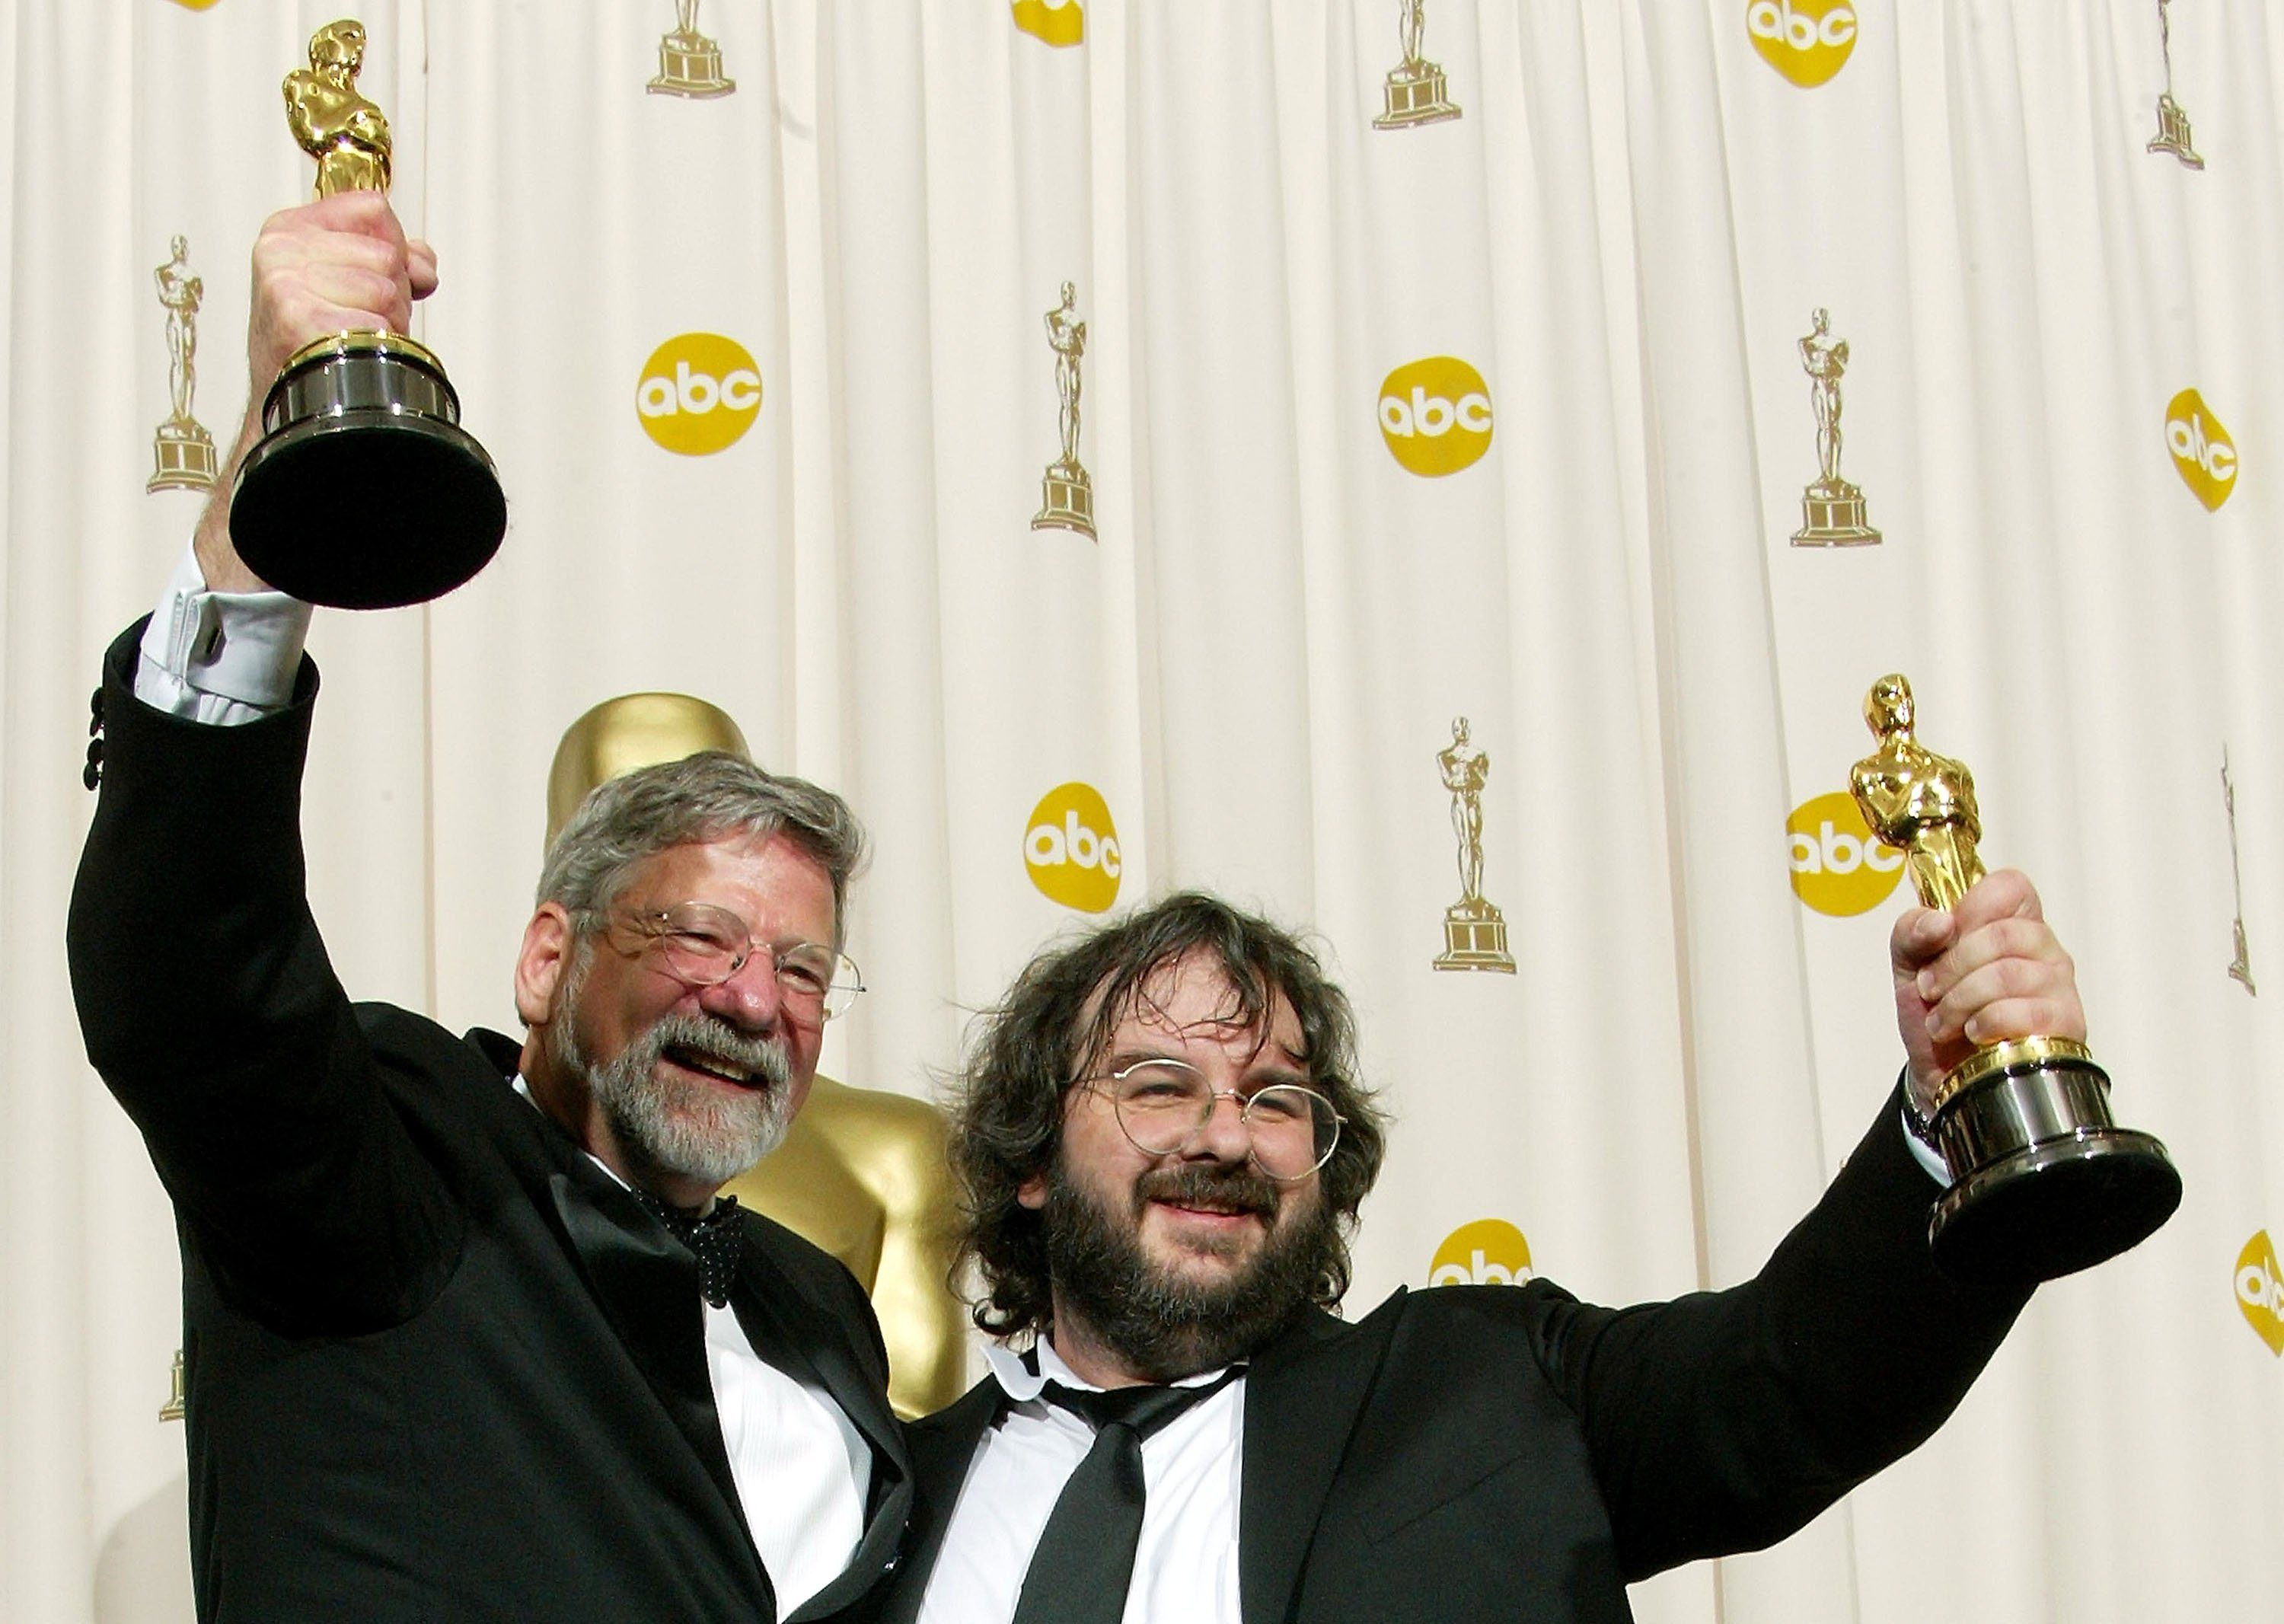 lord of the rings return of the king oscars 2004